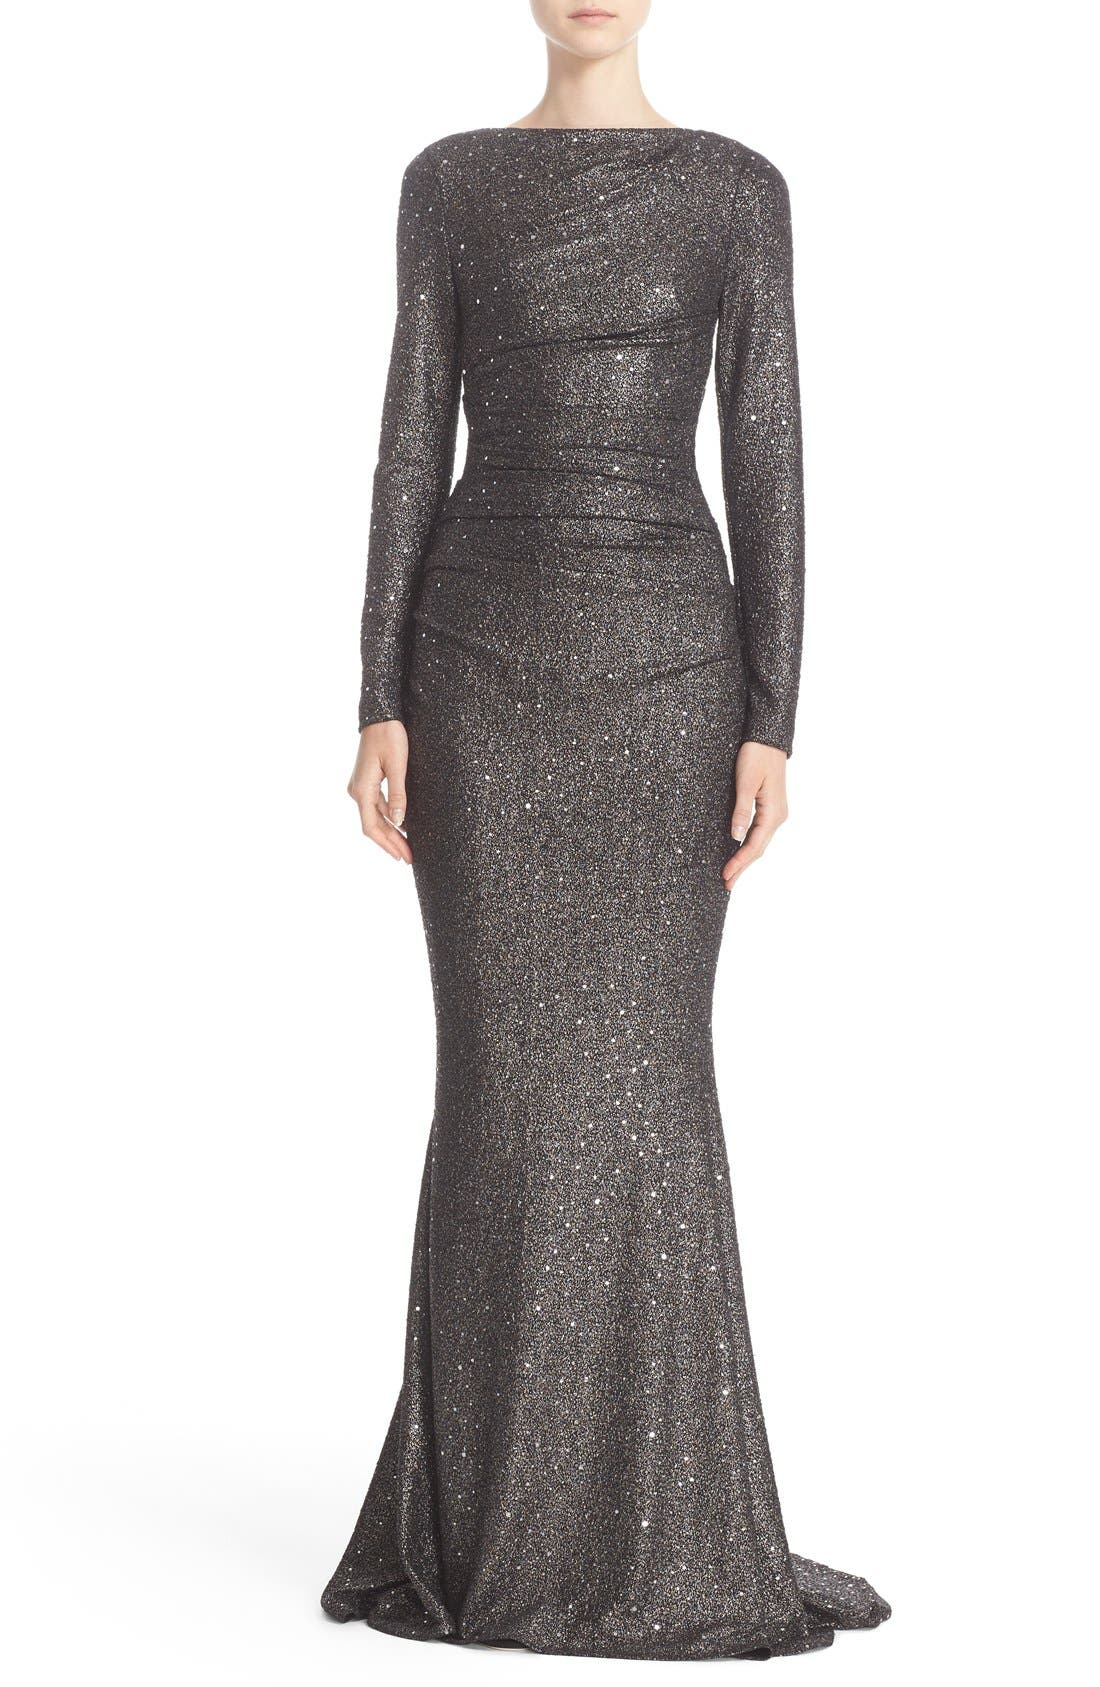 Alternate Image 1 Selected - Talbot Runhof Sequin Glitter Jersey Ruched Gown